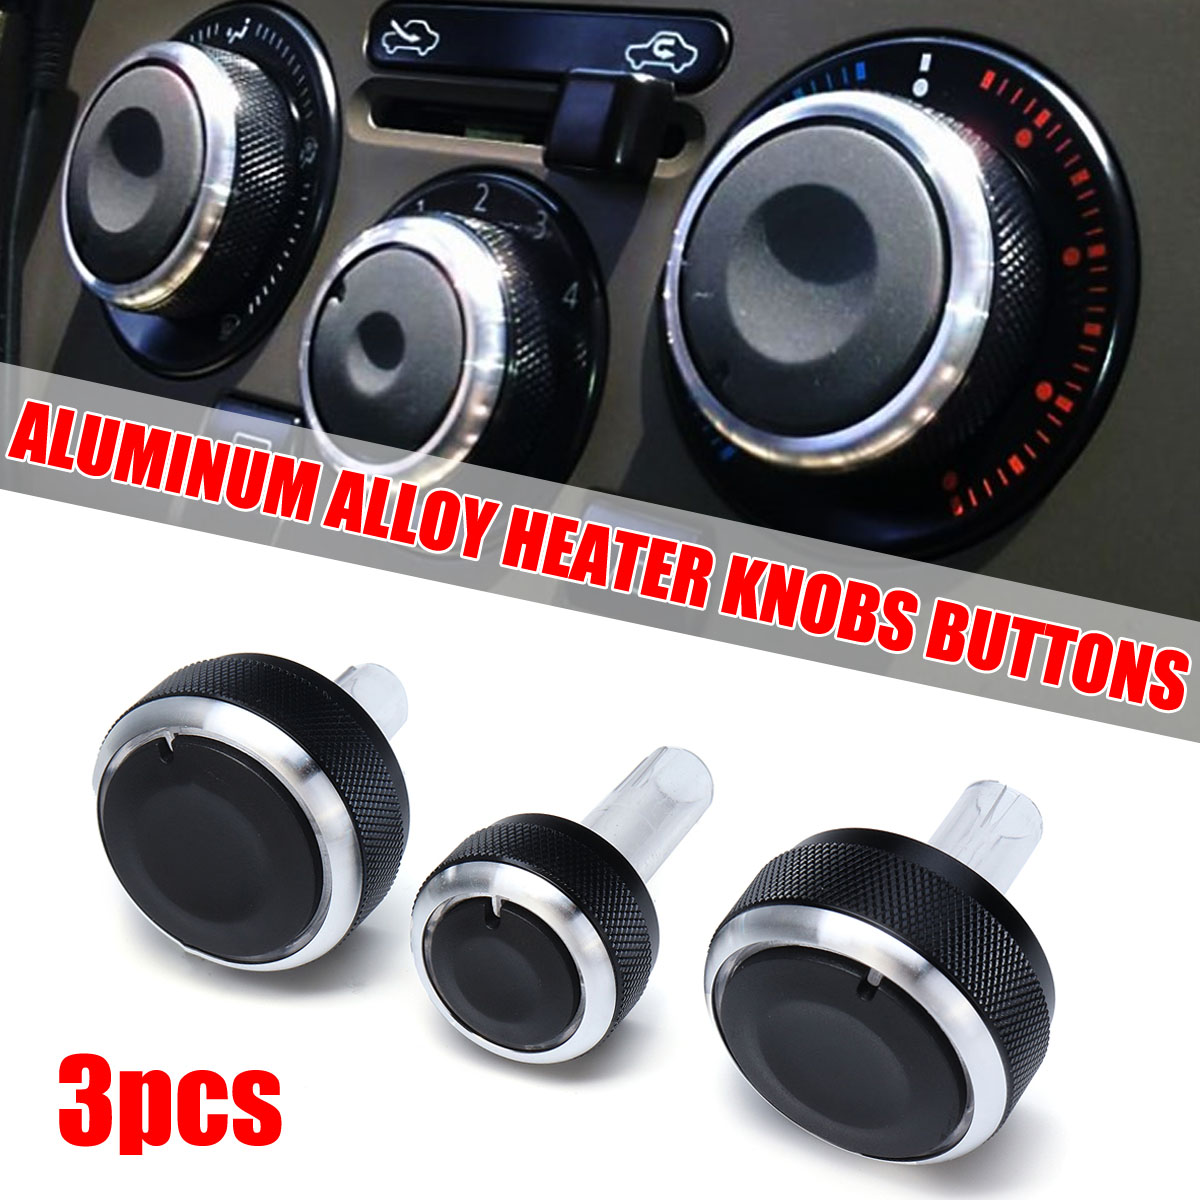 3PCS Aluminium Car AC Knobs Control Buttons Heater Knobs Buttons For Volkswagen for <font><b>VW</b></font> <font><b>Golf</b></font> MK4/Polo 6N2/Bora/Passat B5/B5.5 image